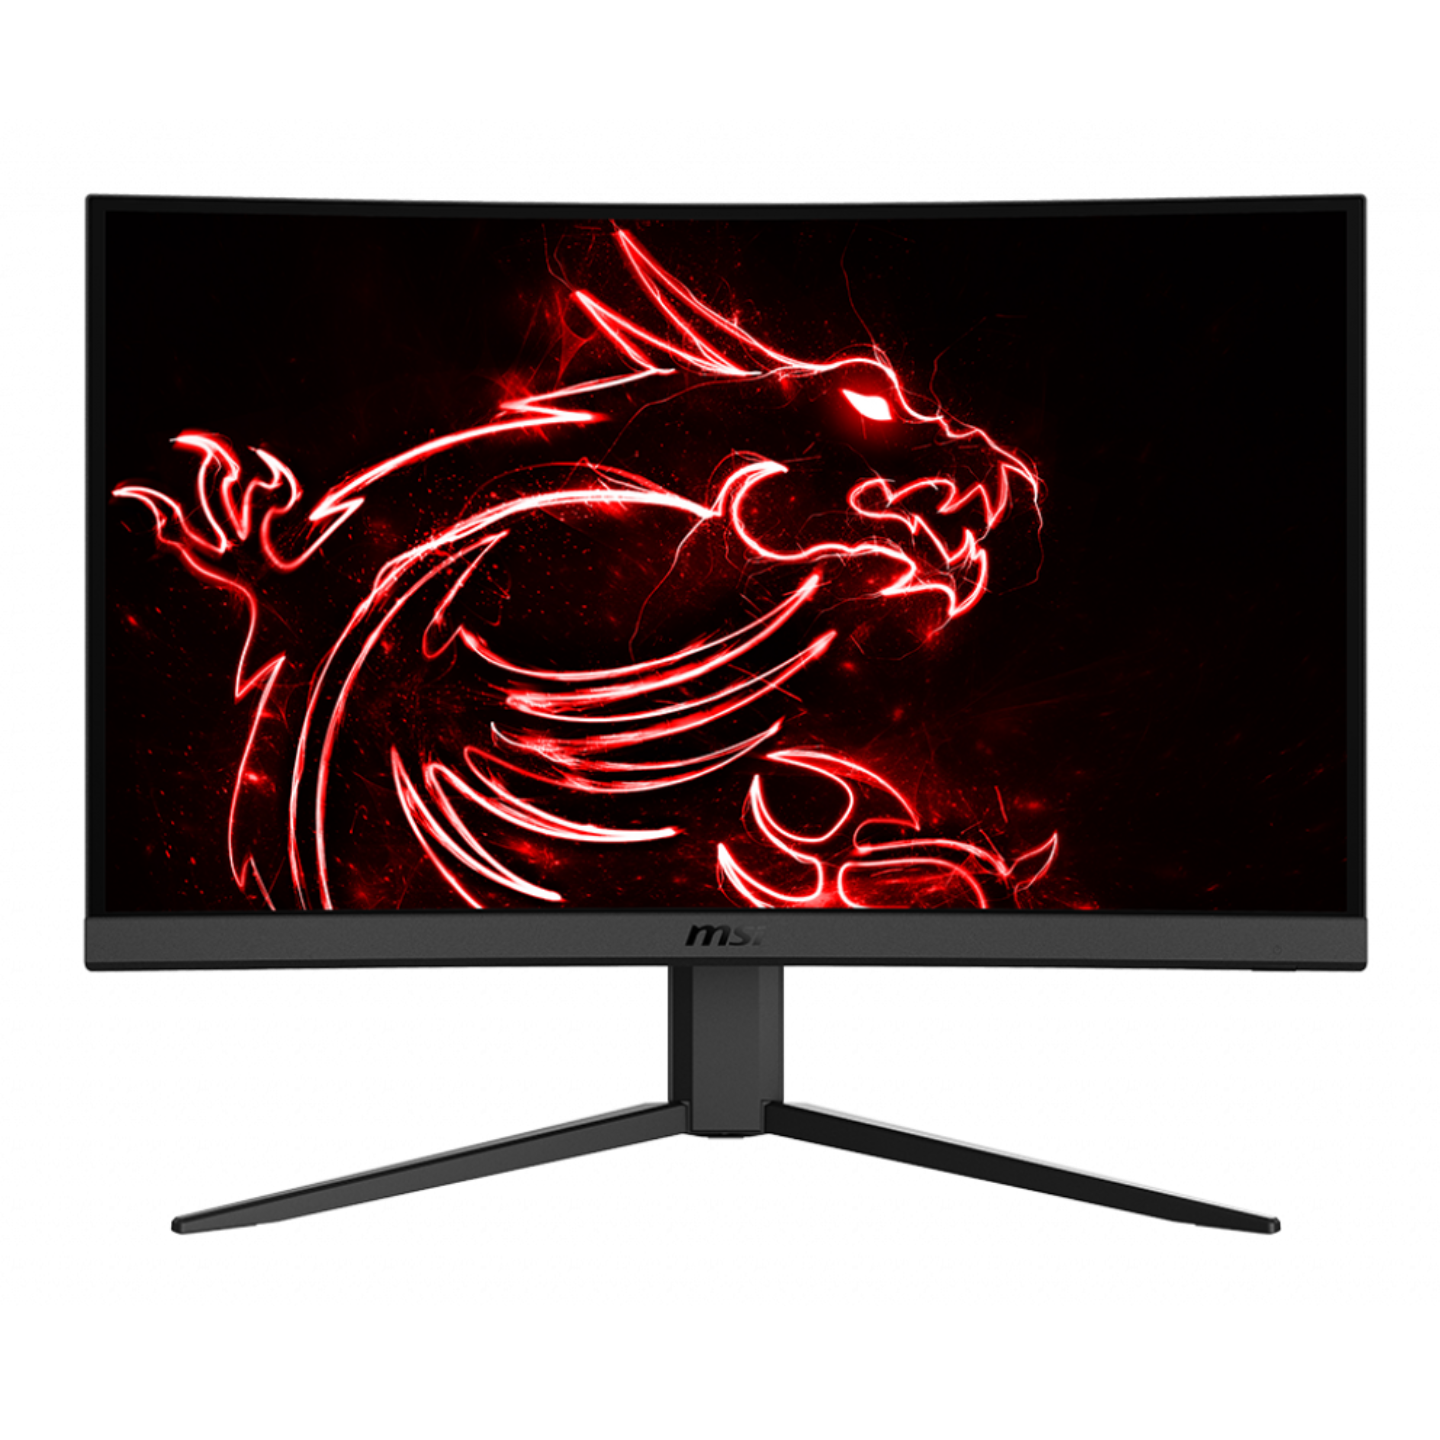 MSI G24C4 Gaming Monitor